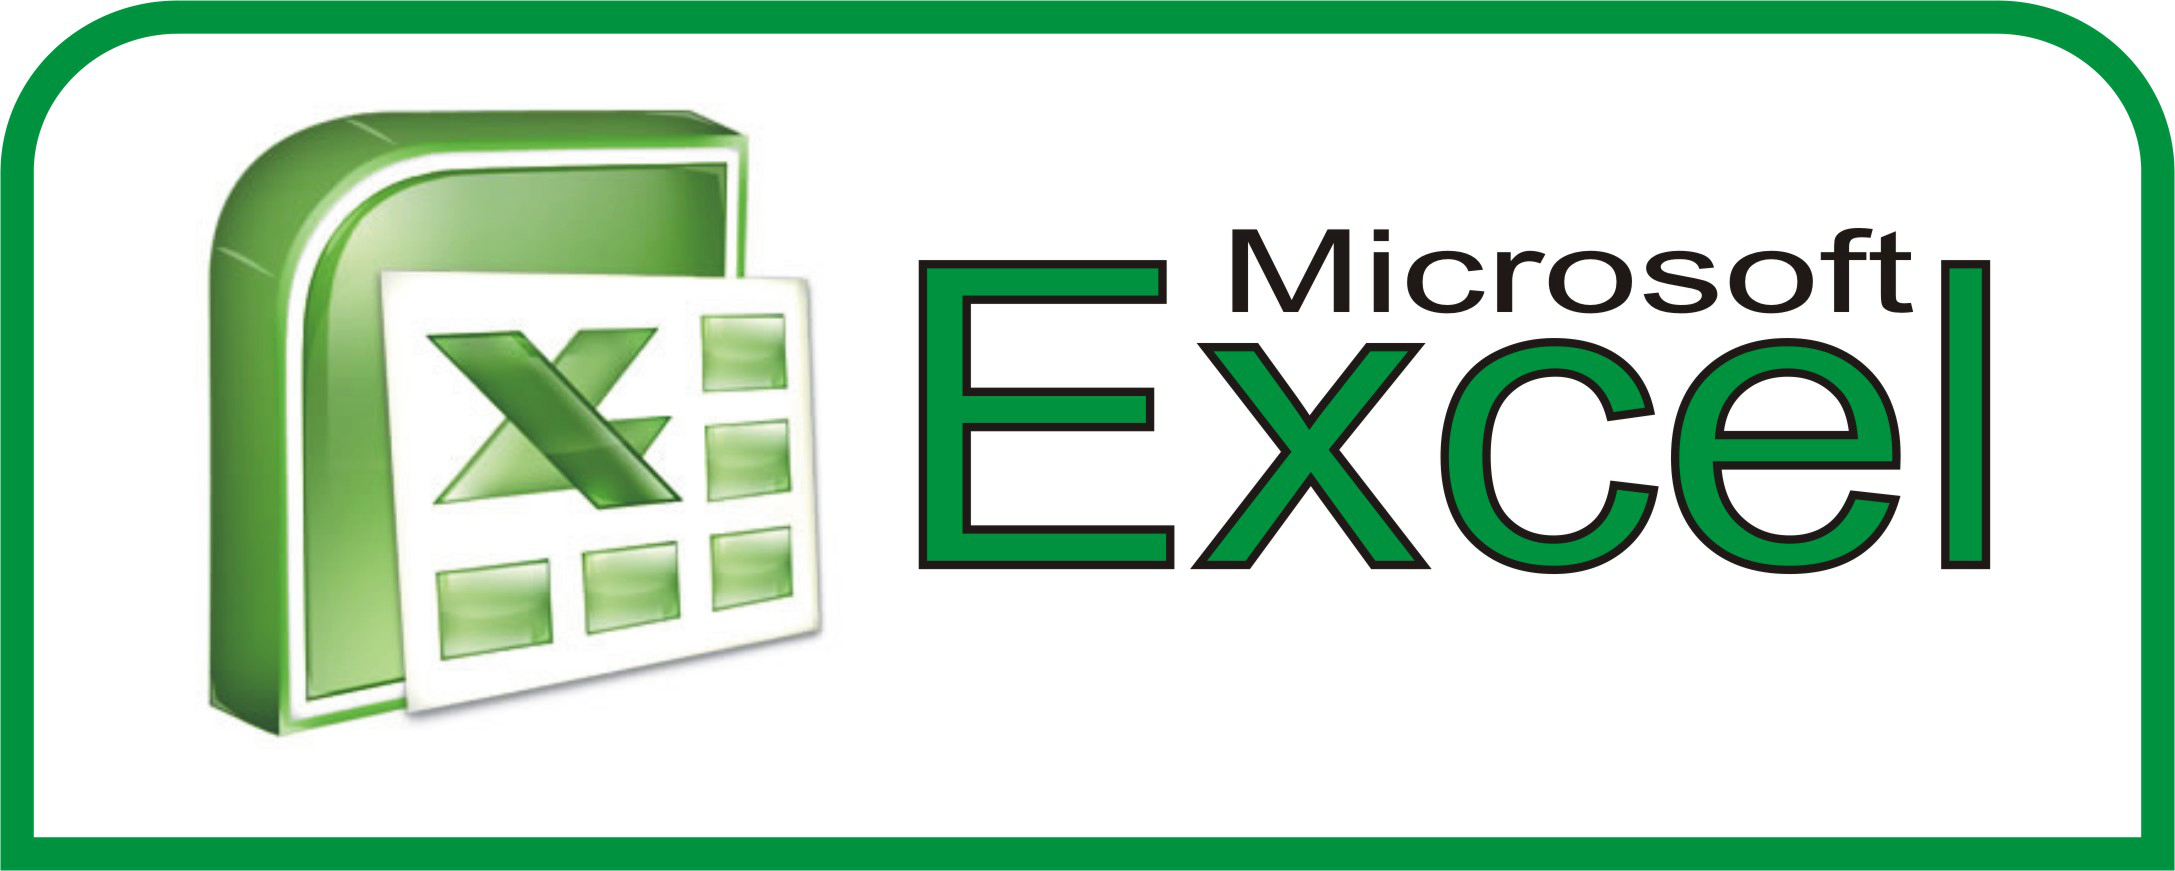 Ediblewildsus  Outstanding  Excel Shortcuts You Probably Didnt Know About  Techdissected With Likable Excel Iif Besides Introduction To Excel Furthermore Free Version Of Excel With Delectable Excel Lookup Example Also Using The If Function In Excel In Addition Excel Legend And Import Contacts From Excel To Outlook As Well As Excel Protect Sheet Additionally How To Protect Formulas In Excel From Techdissectedcom With Ediblewildsus  Likable  Excel Shortcuts You Probably Didnt Know About  Techdissected With Delectable Excel Iif Besides Introduction To Excel Furthermore Free Version Of Excel And Outstanding Excel Lookup Example Also Using The If Function In Excel In Addition Excel Legend From Techdissectedcom